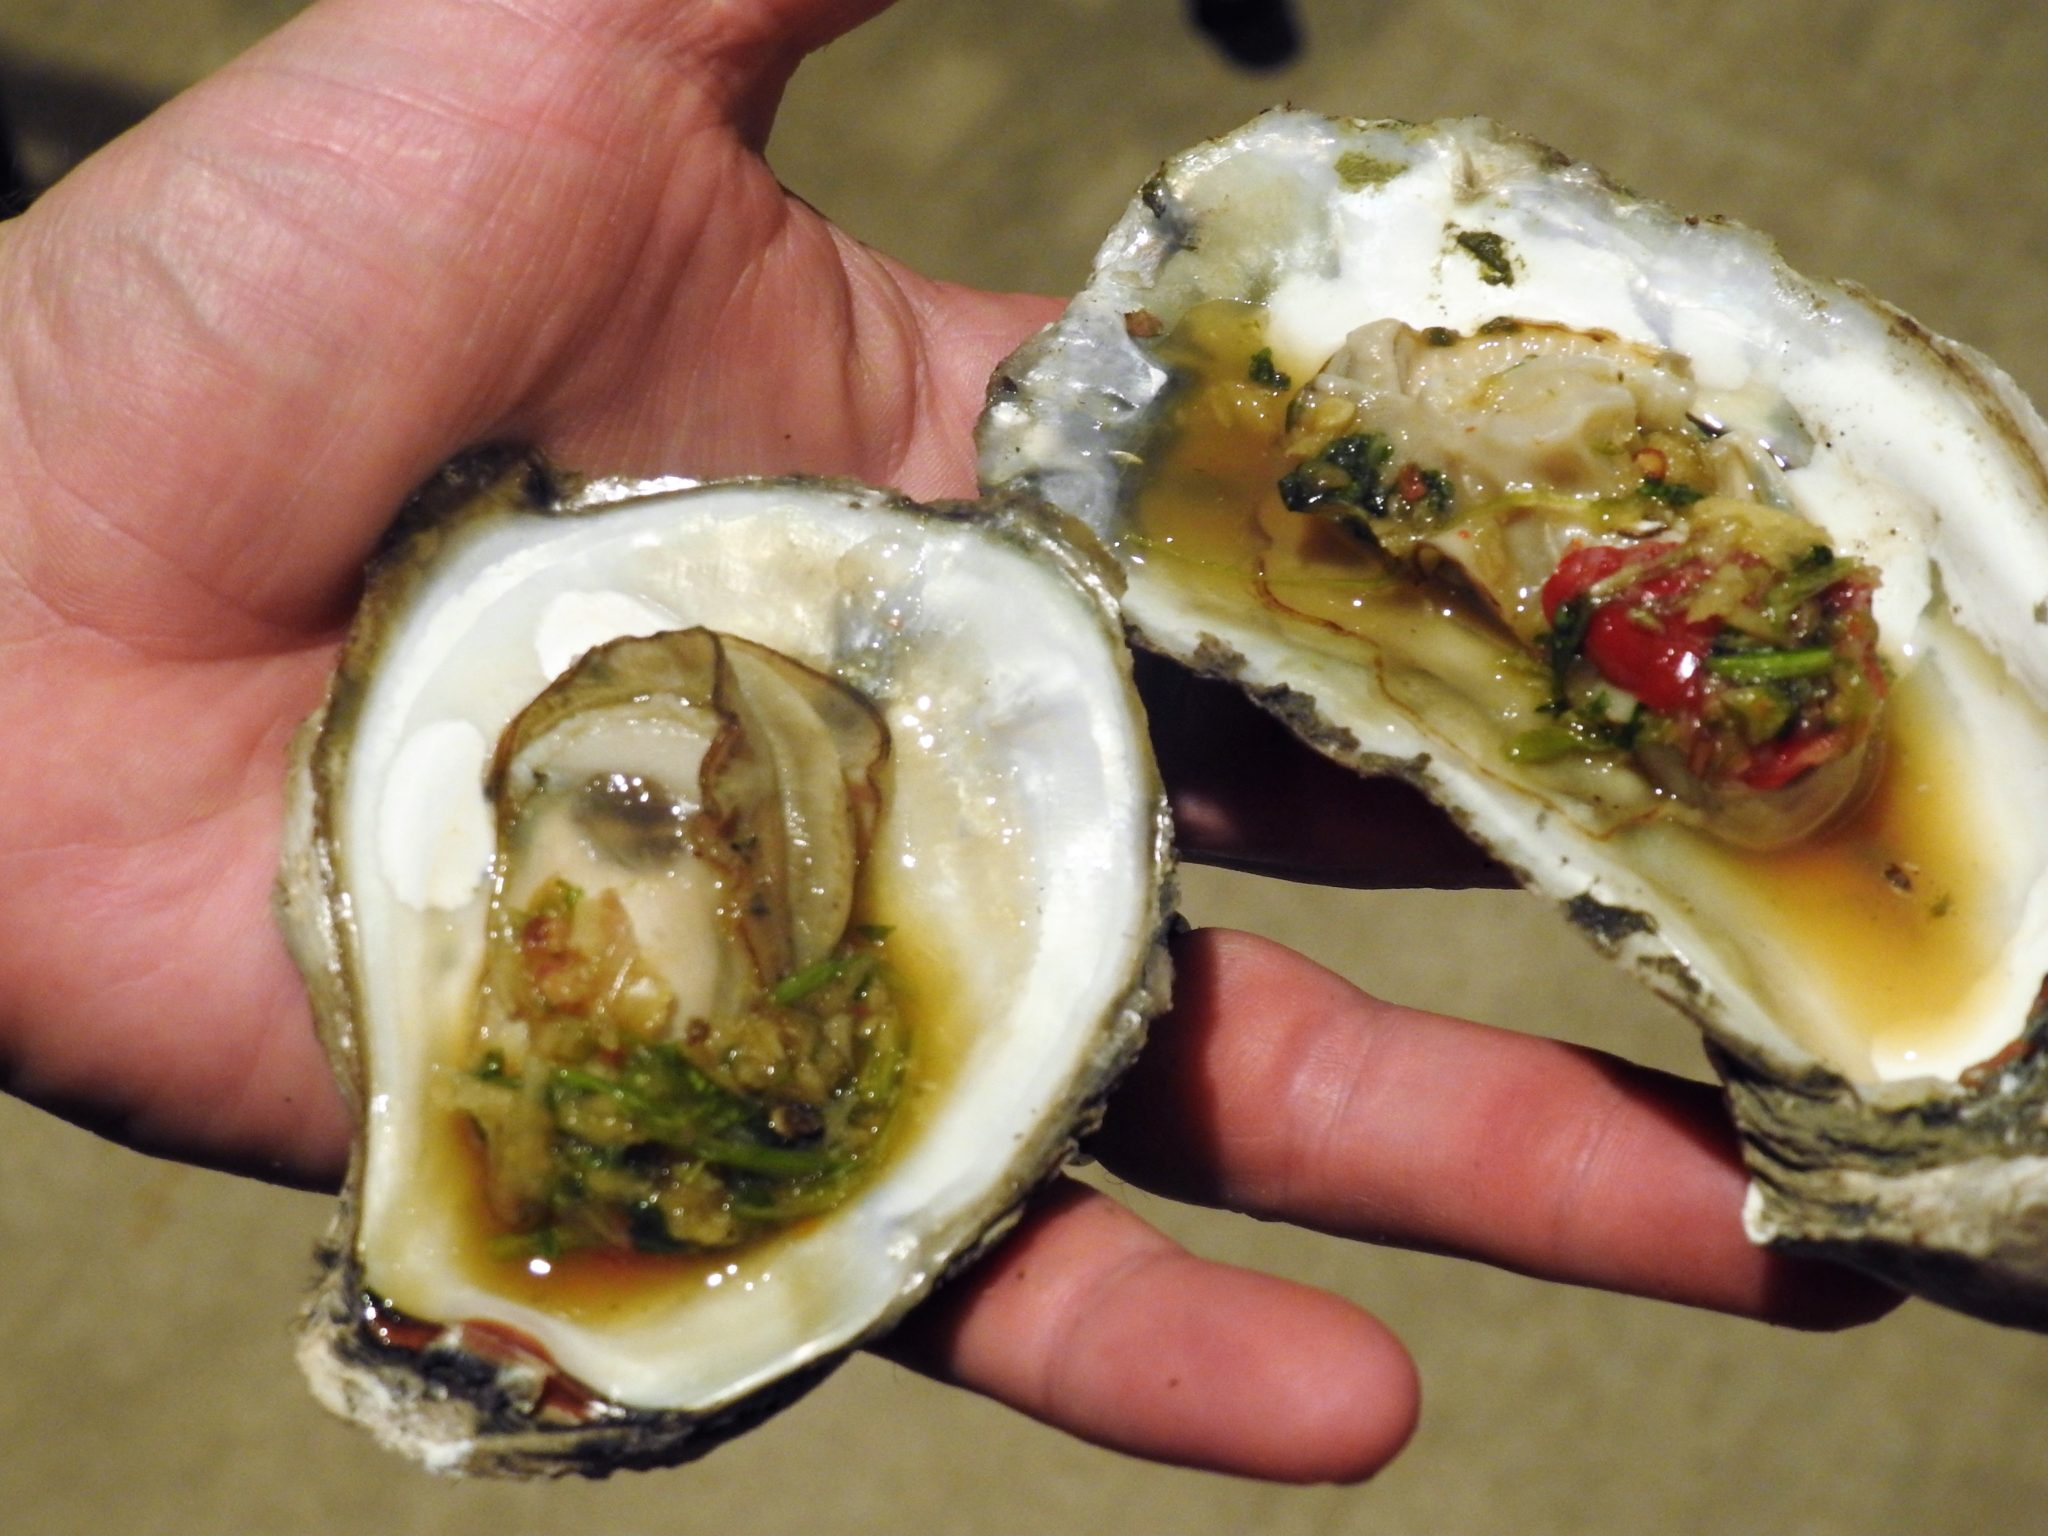 How To Make Raw Oysters At Home